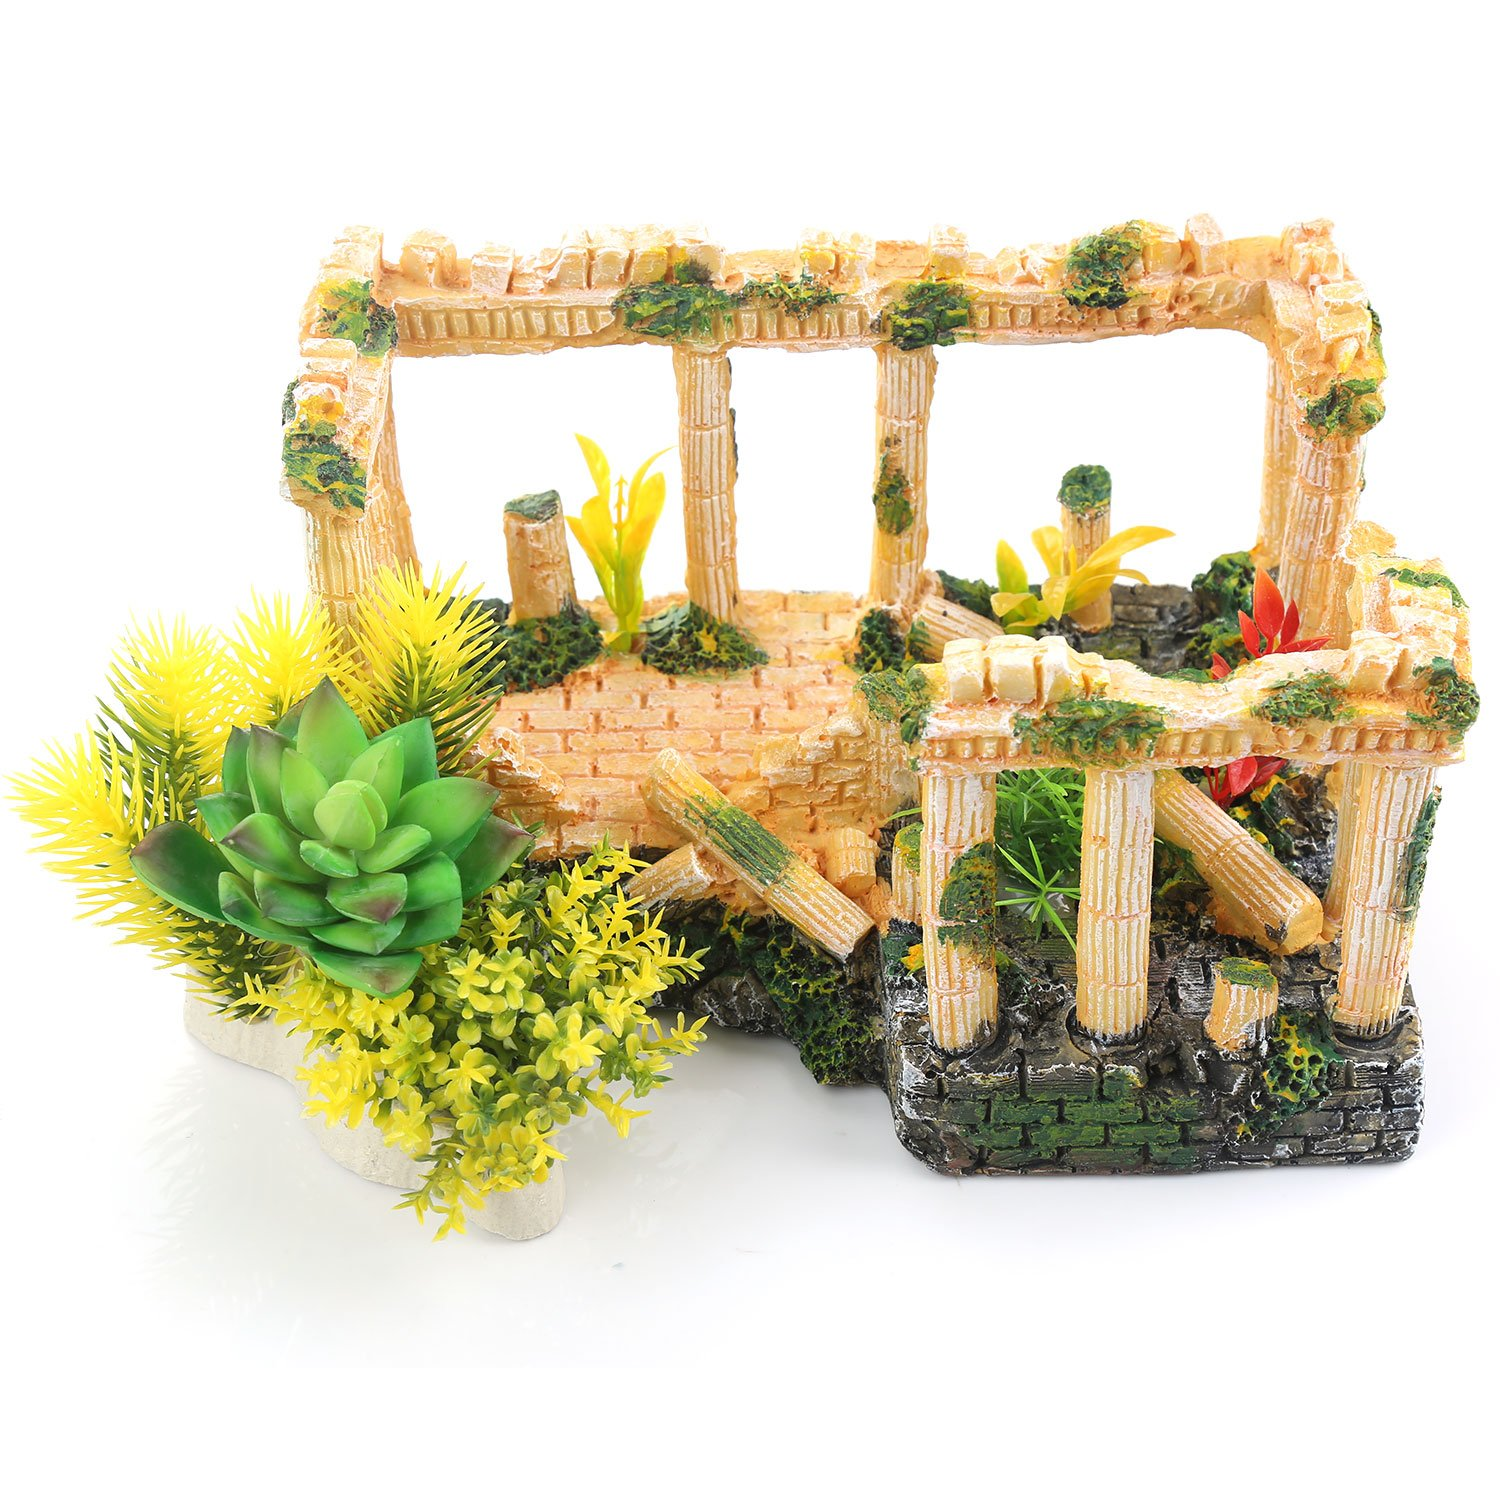 Amazon.com: ZUINIUBI Aquarium Decorations, Artificial Plastic Succulent Plants and Resin Roman Column Wreck Fish Tank Caves Hide Hut Ornaments: Garden & ...